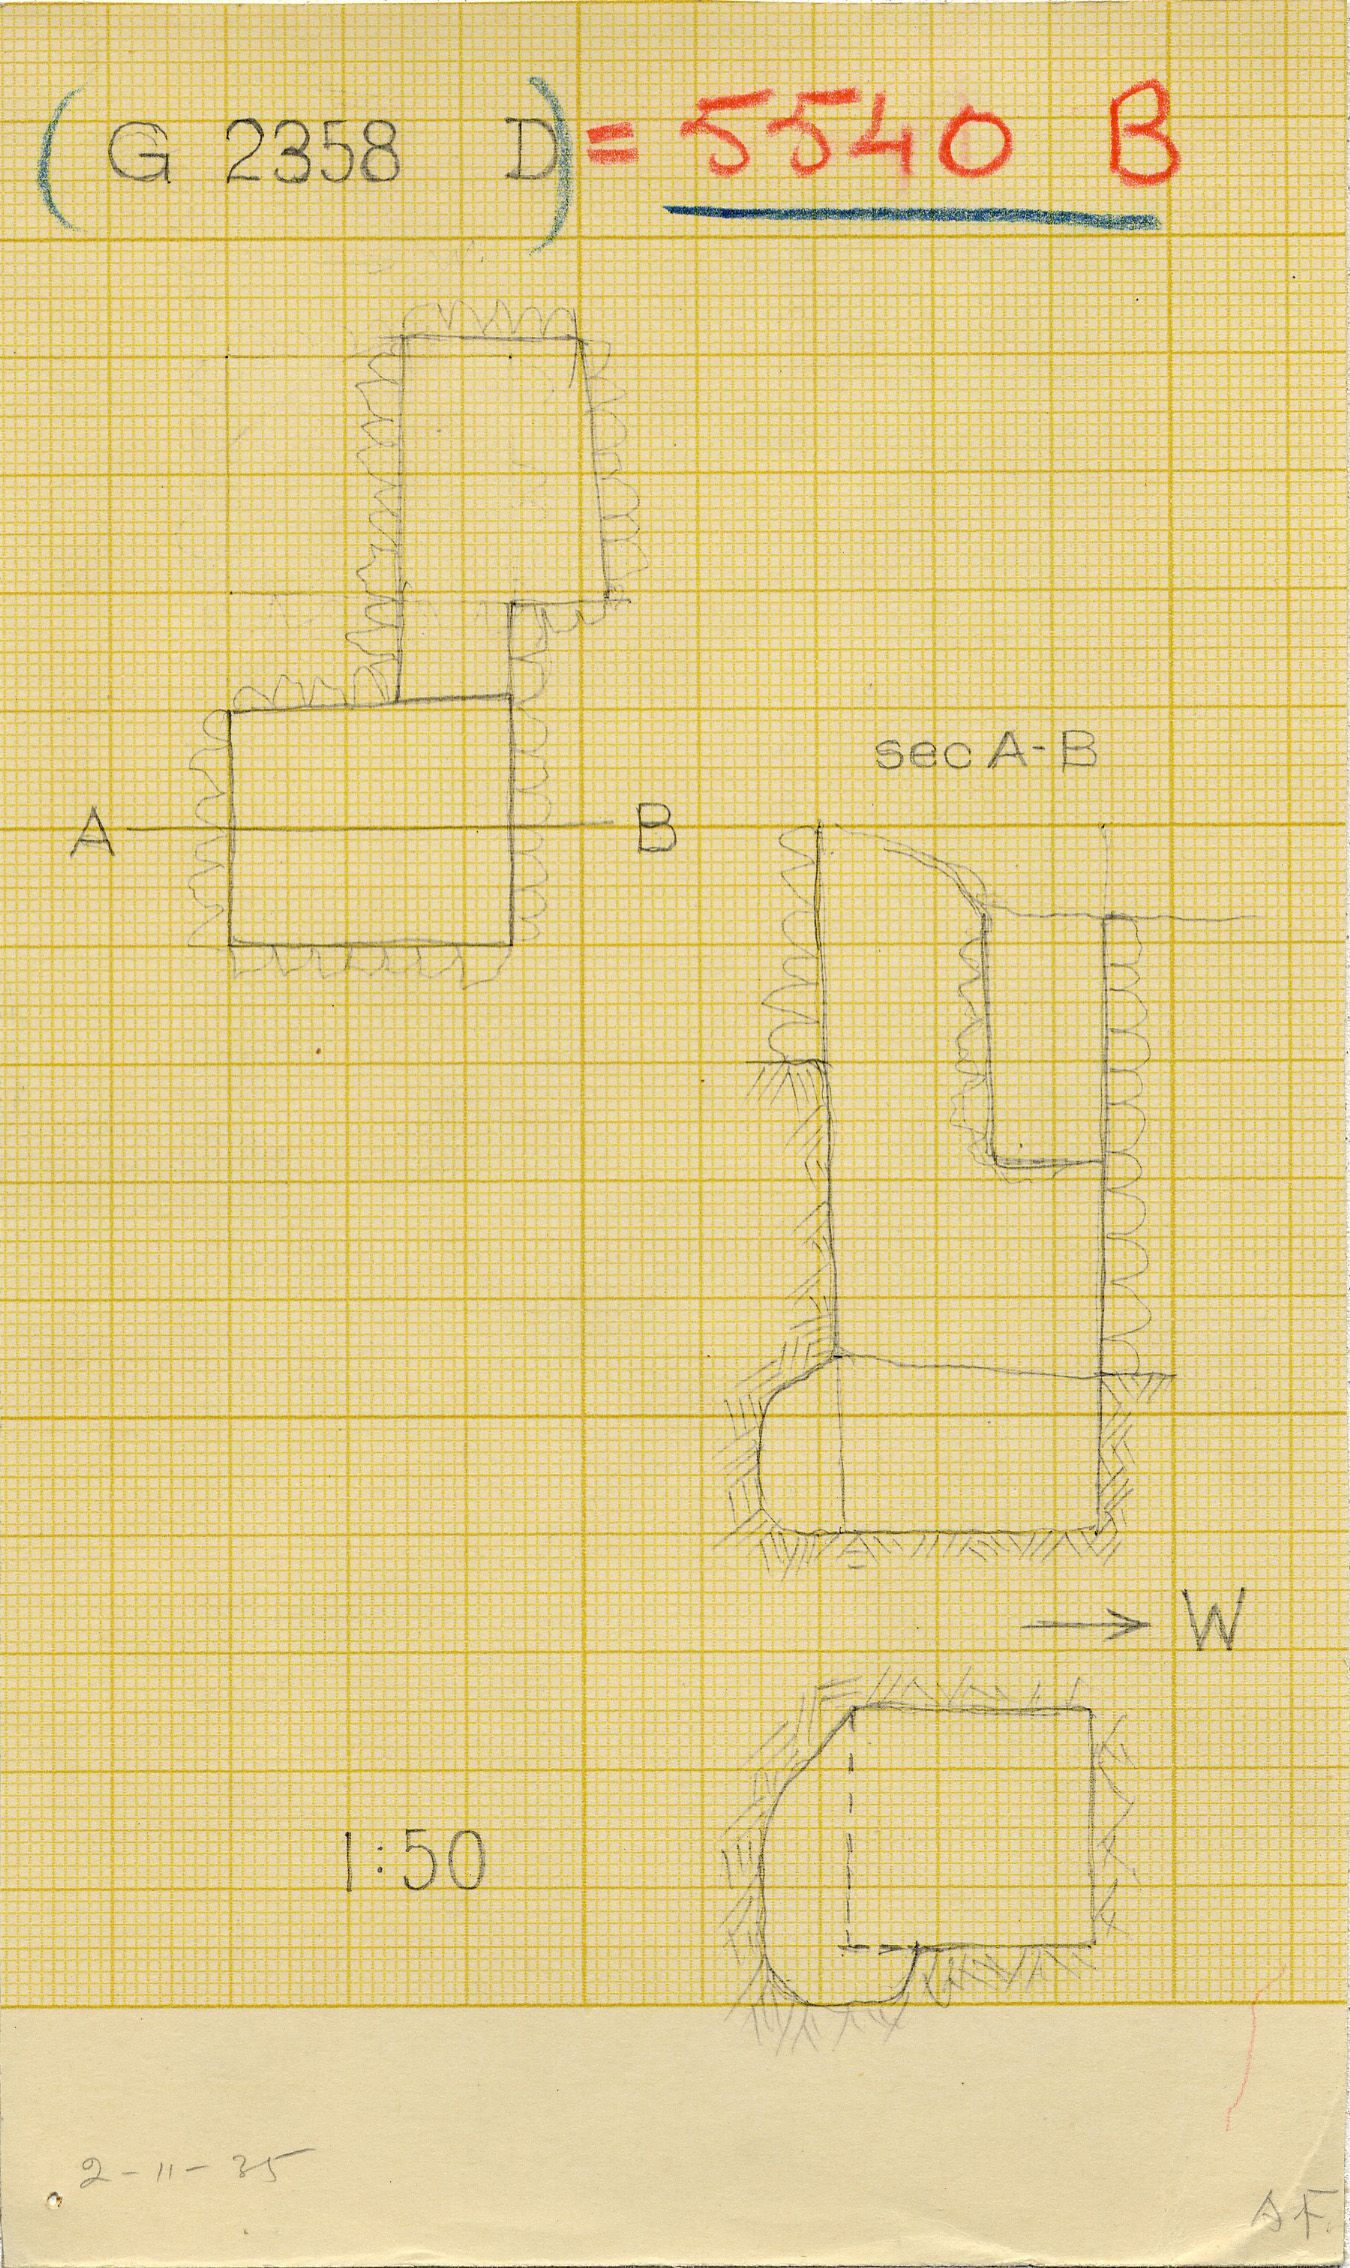 Maps and plans: G 2358 D = G 5540, Shaft B